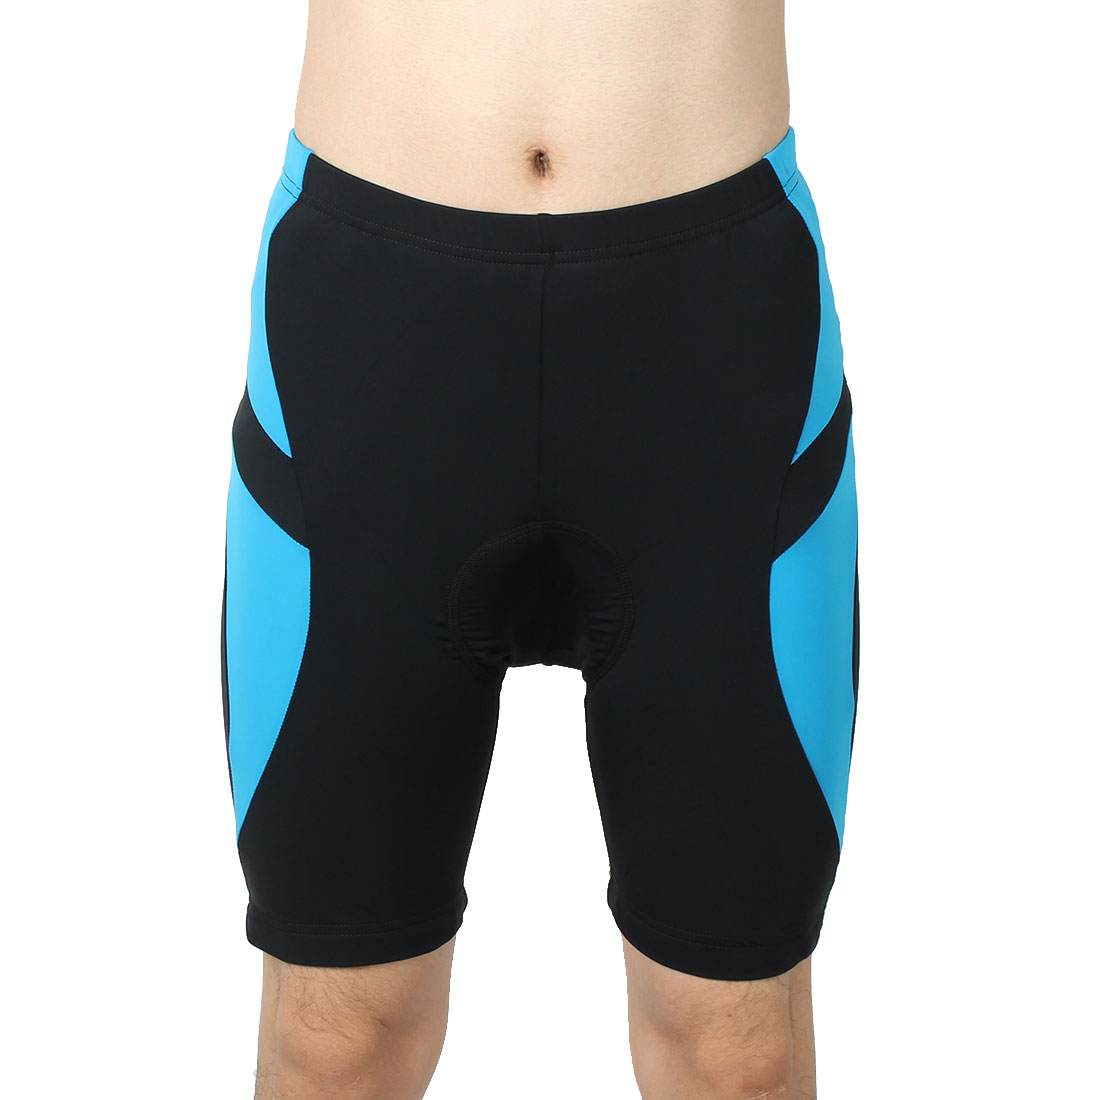 REALTOO Authorized Bicycle Underwear Cycling Shorts Pants Black Blue M (W 34)